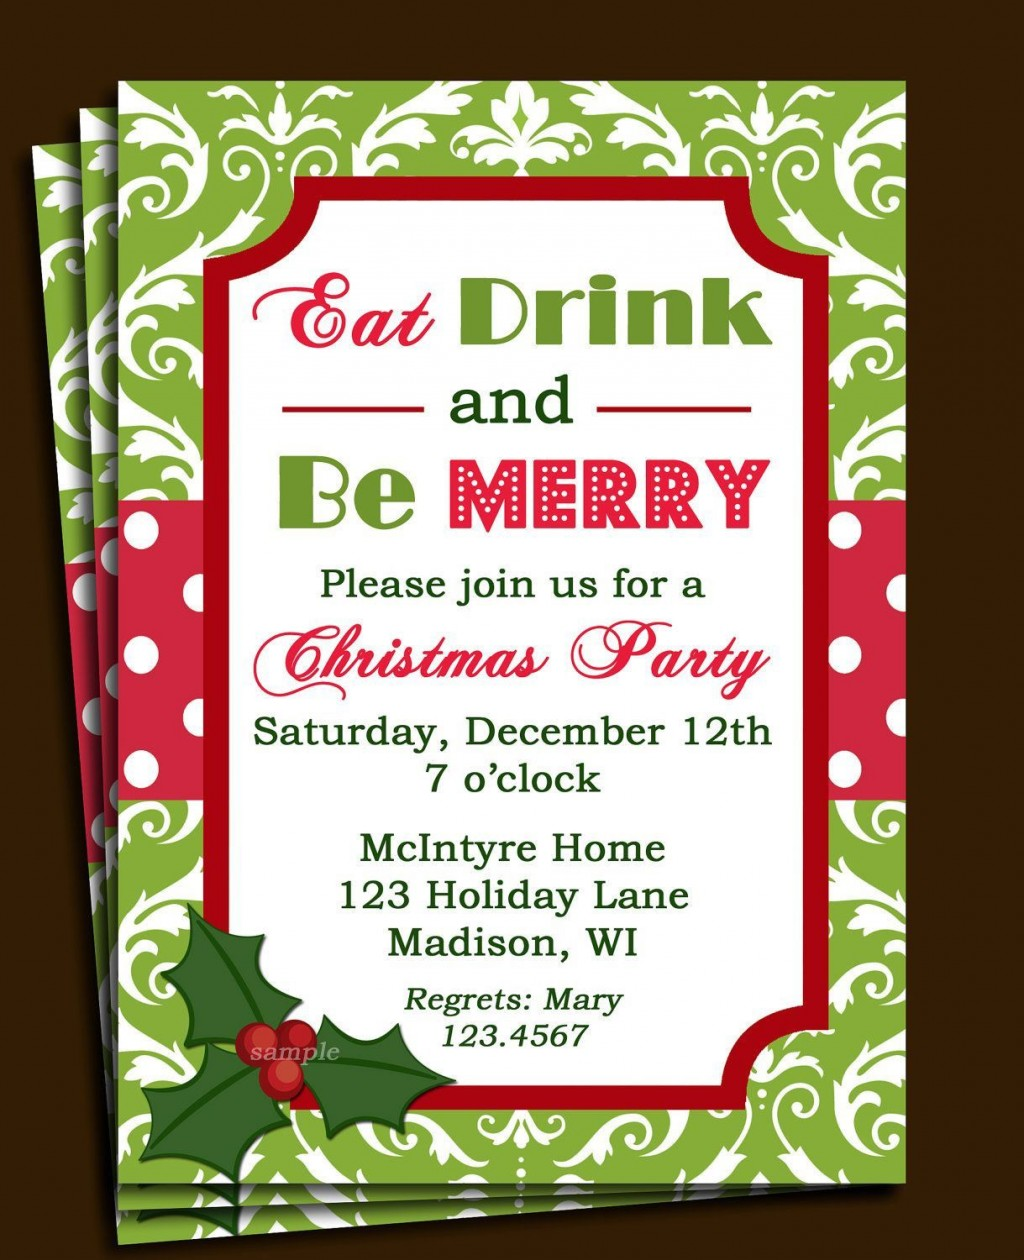 009 Best Christma Party Invite Template Word High Def  Holiday Free Invitation Wording ExampleLarge